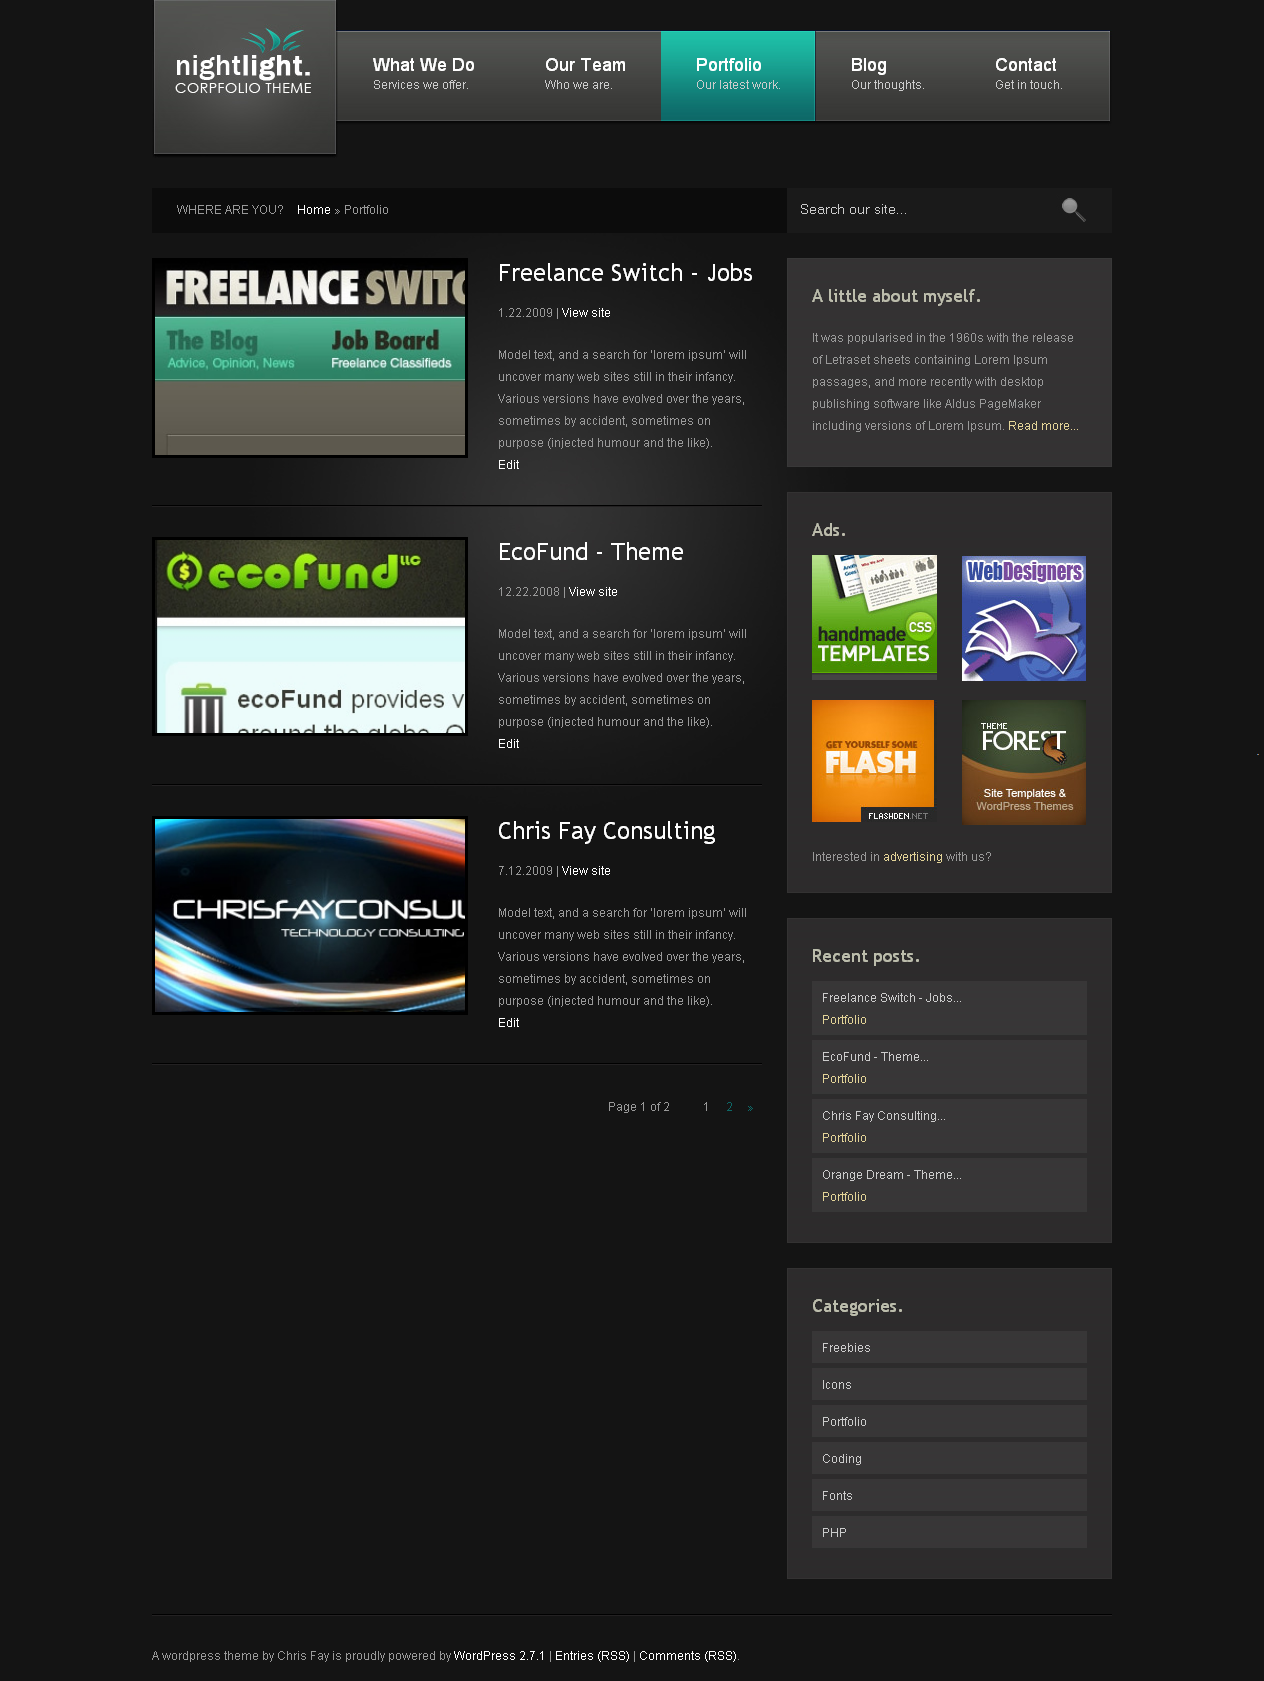 nightLight - Wordpress Theme - Portfolio Page  A clean and stylish layout with multi-module sidebar, ad space, and blog presentation. Custom field controlled.